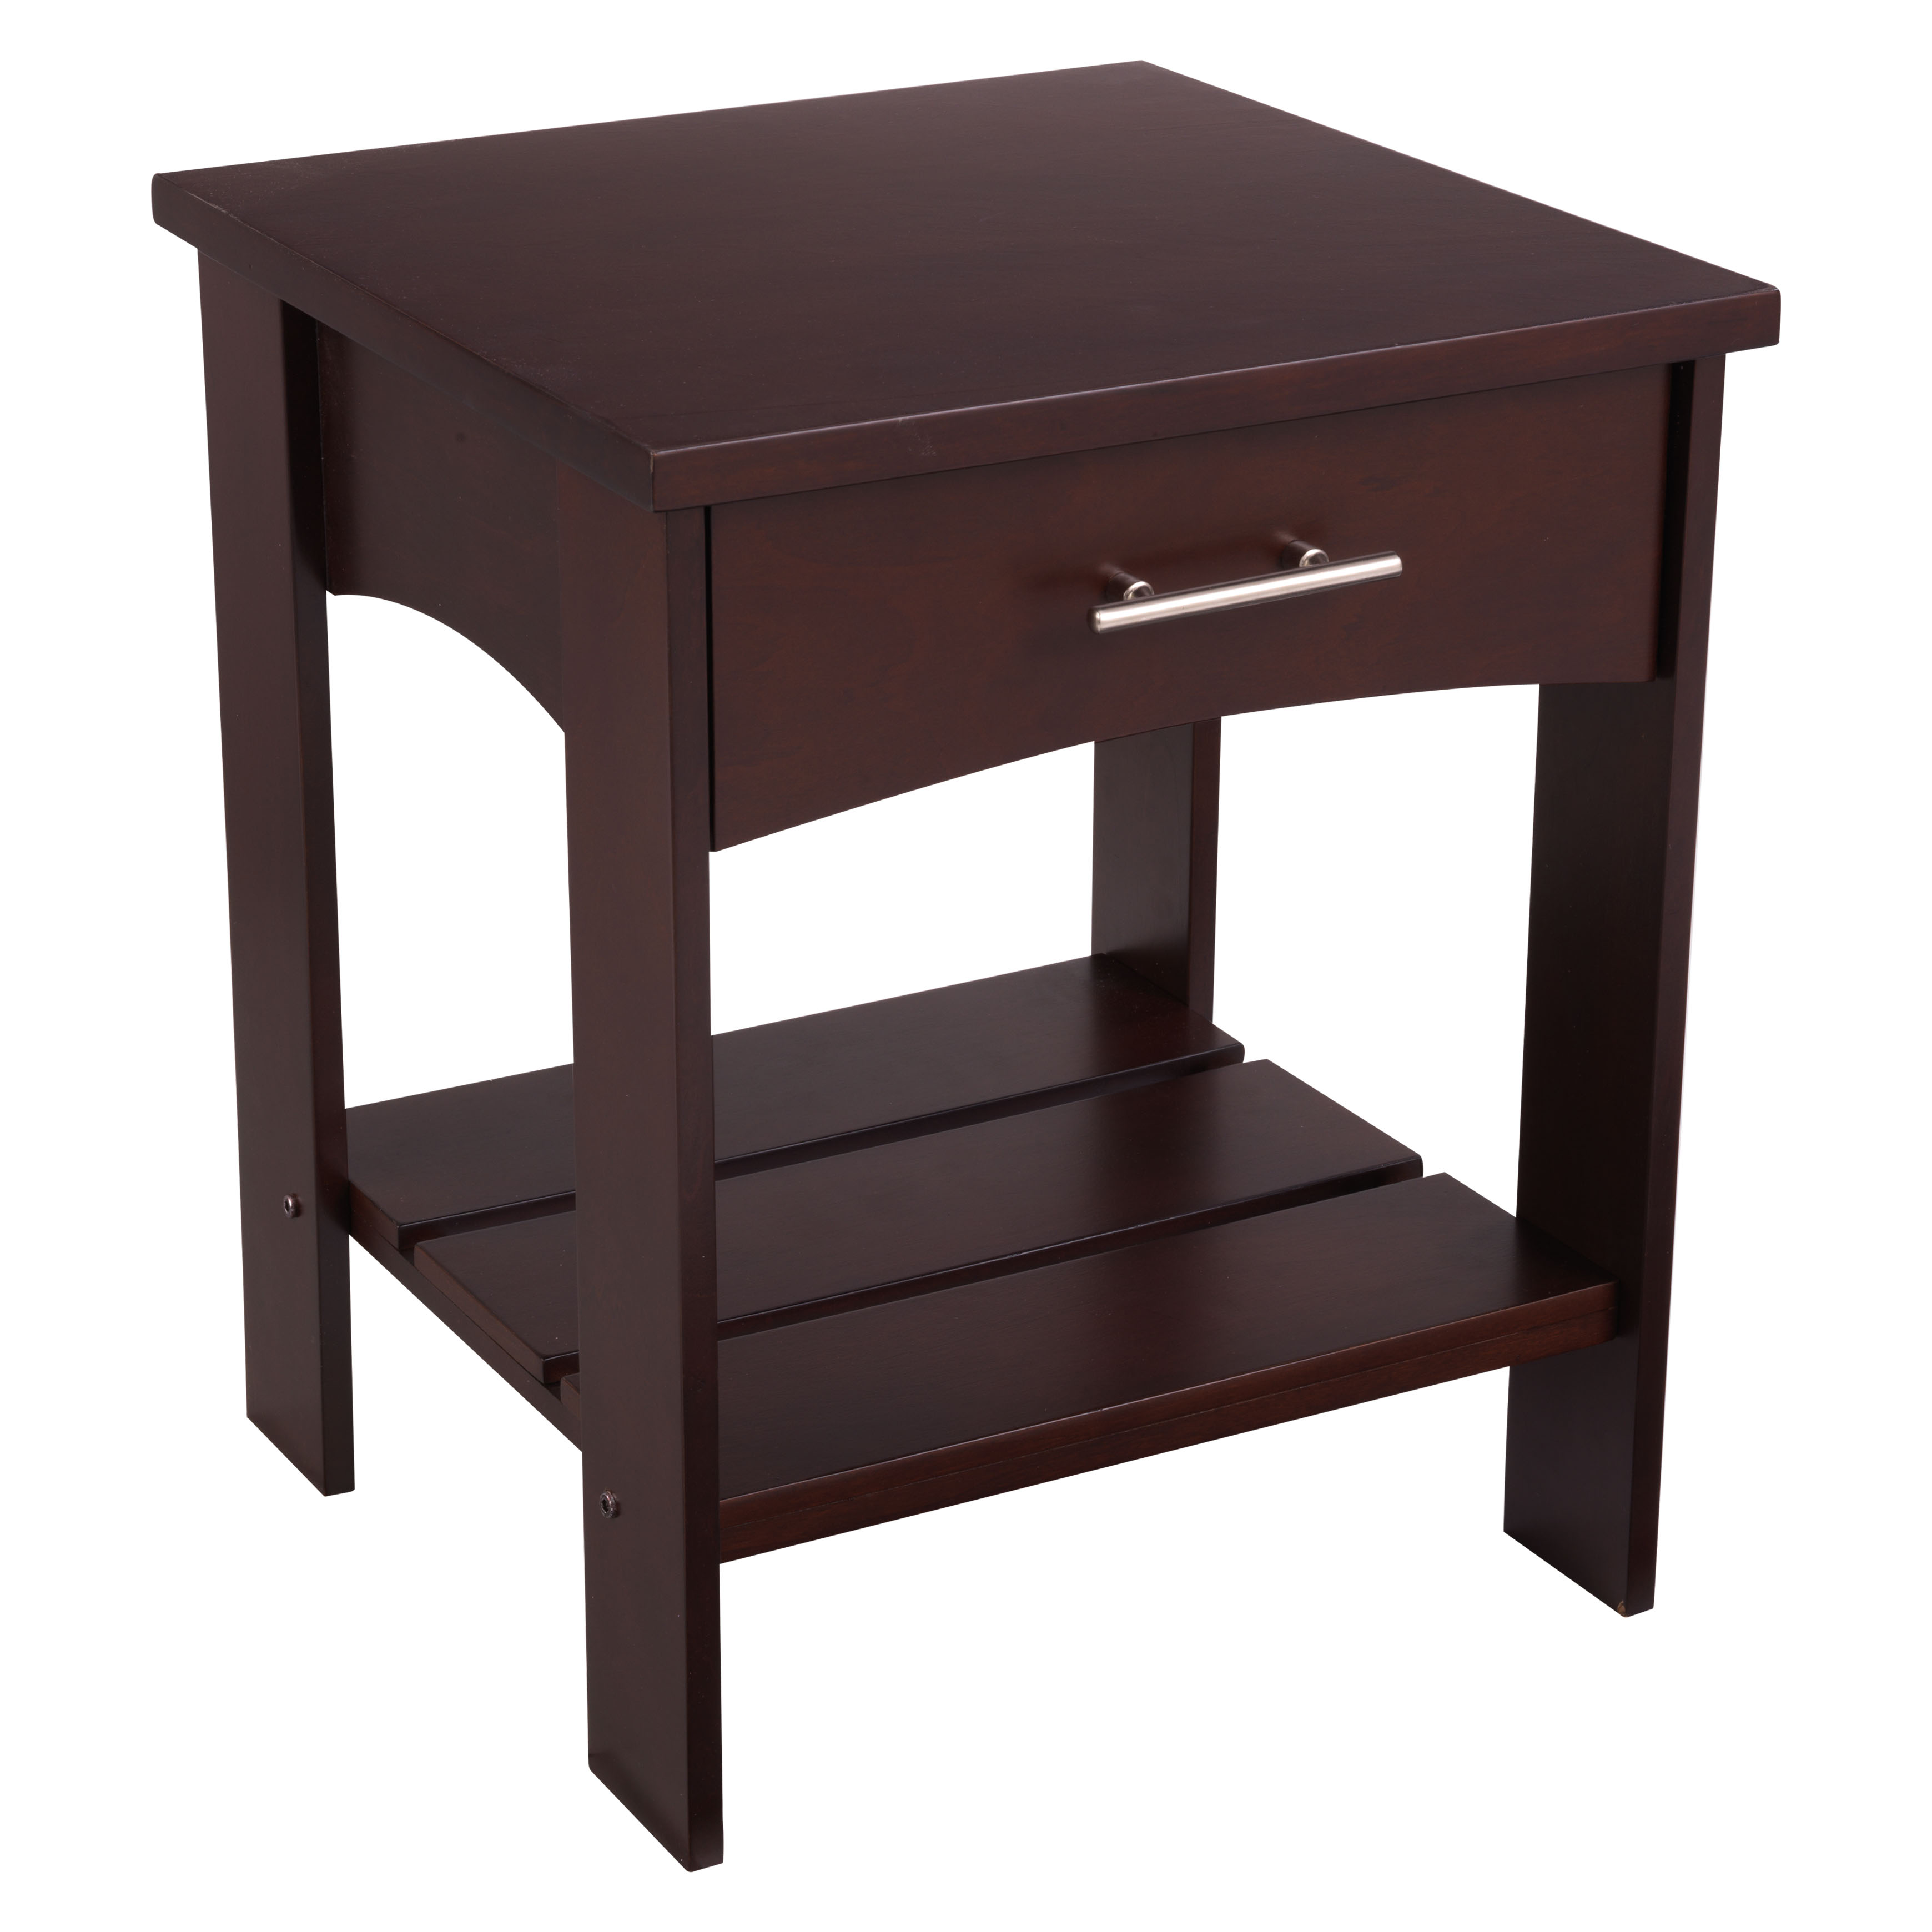 KidKraft Addison Wooden Twin Side Table with Drawer, Children's Bedroom Furniture - Espresso